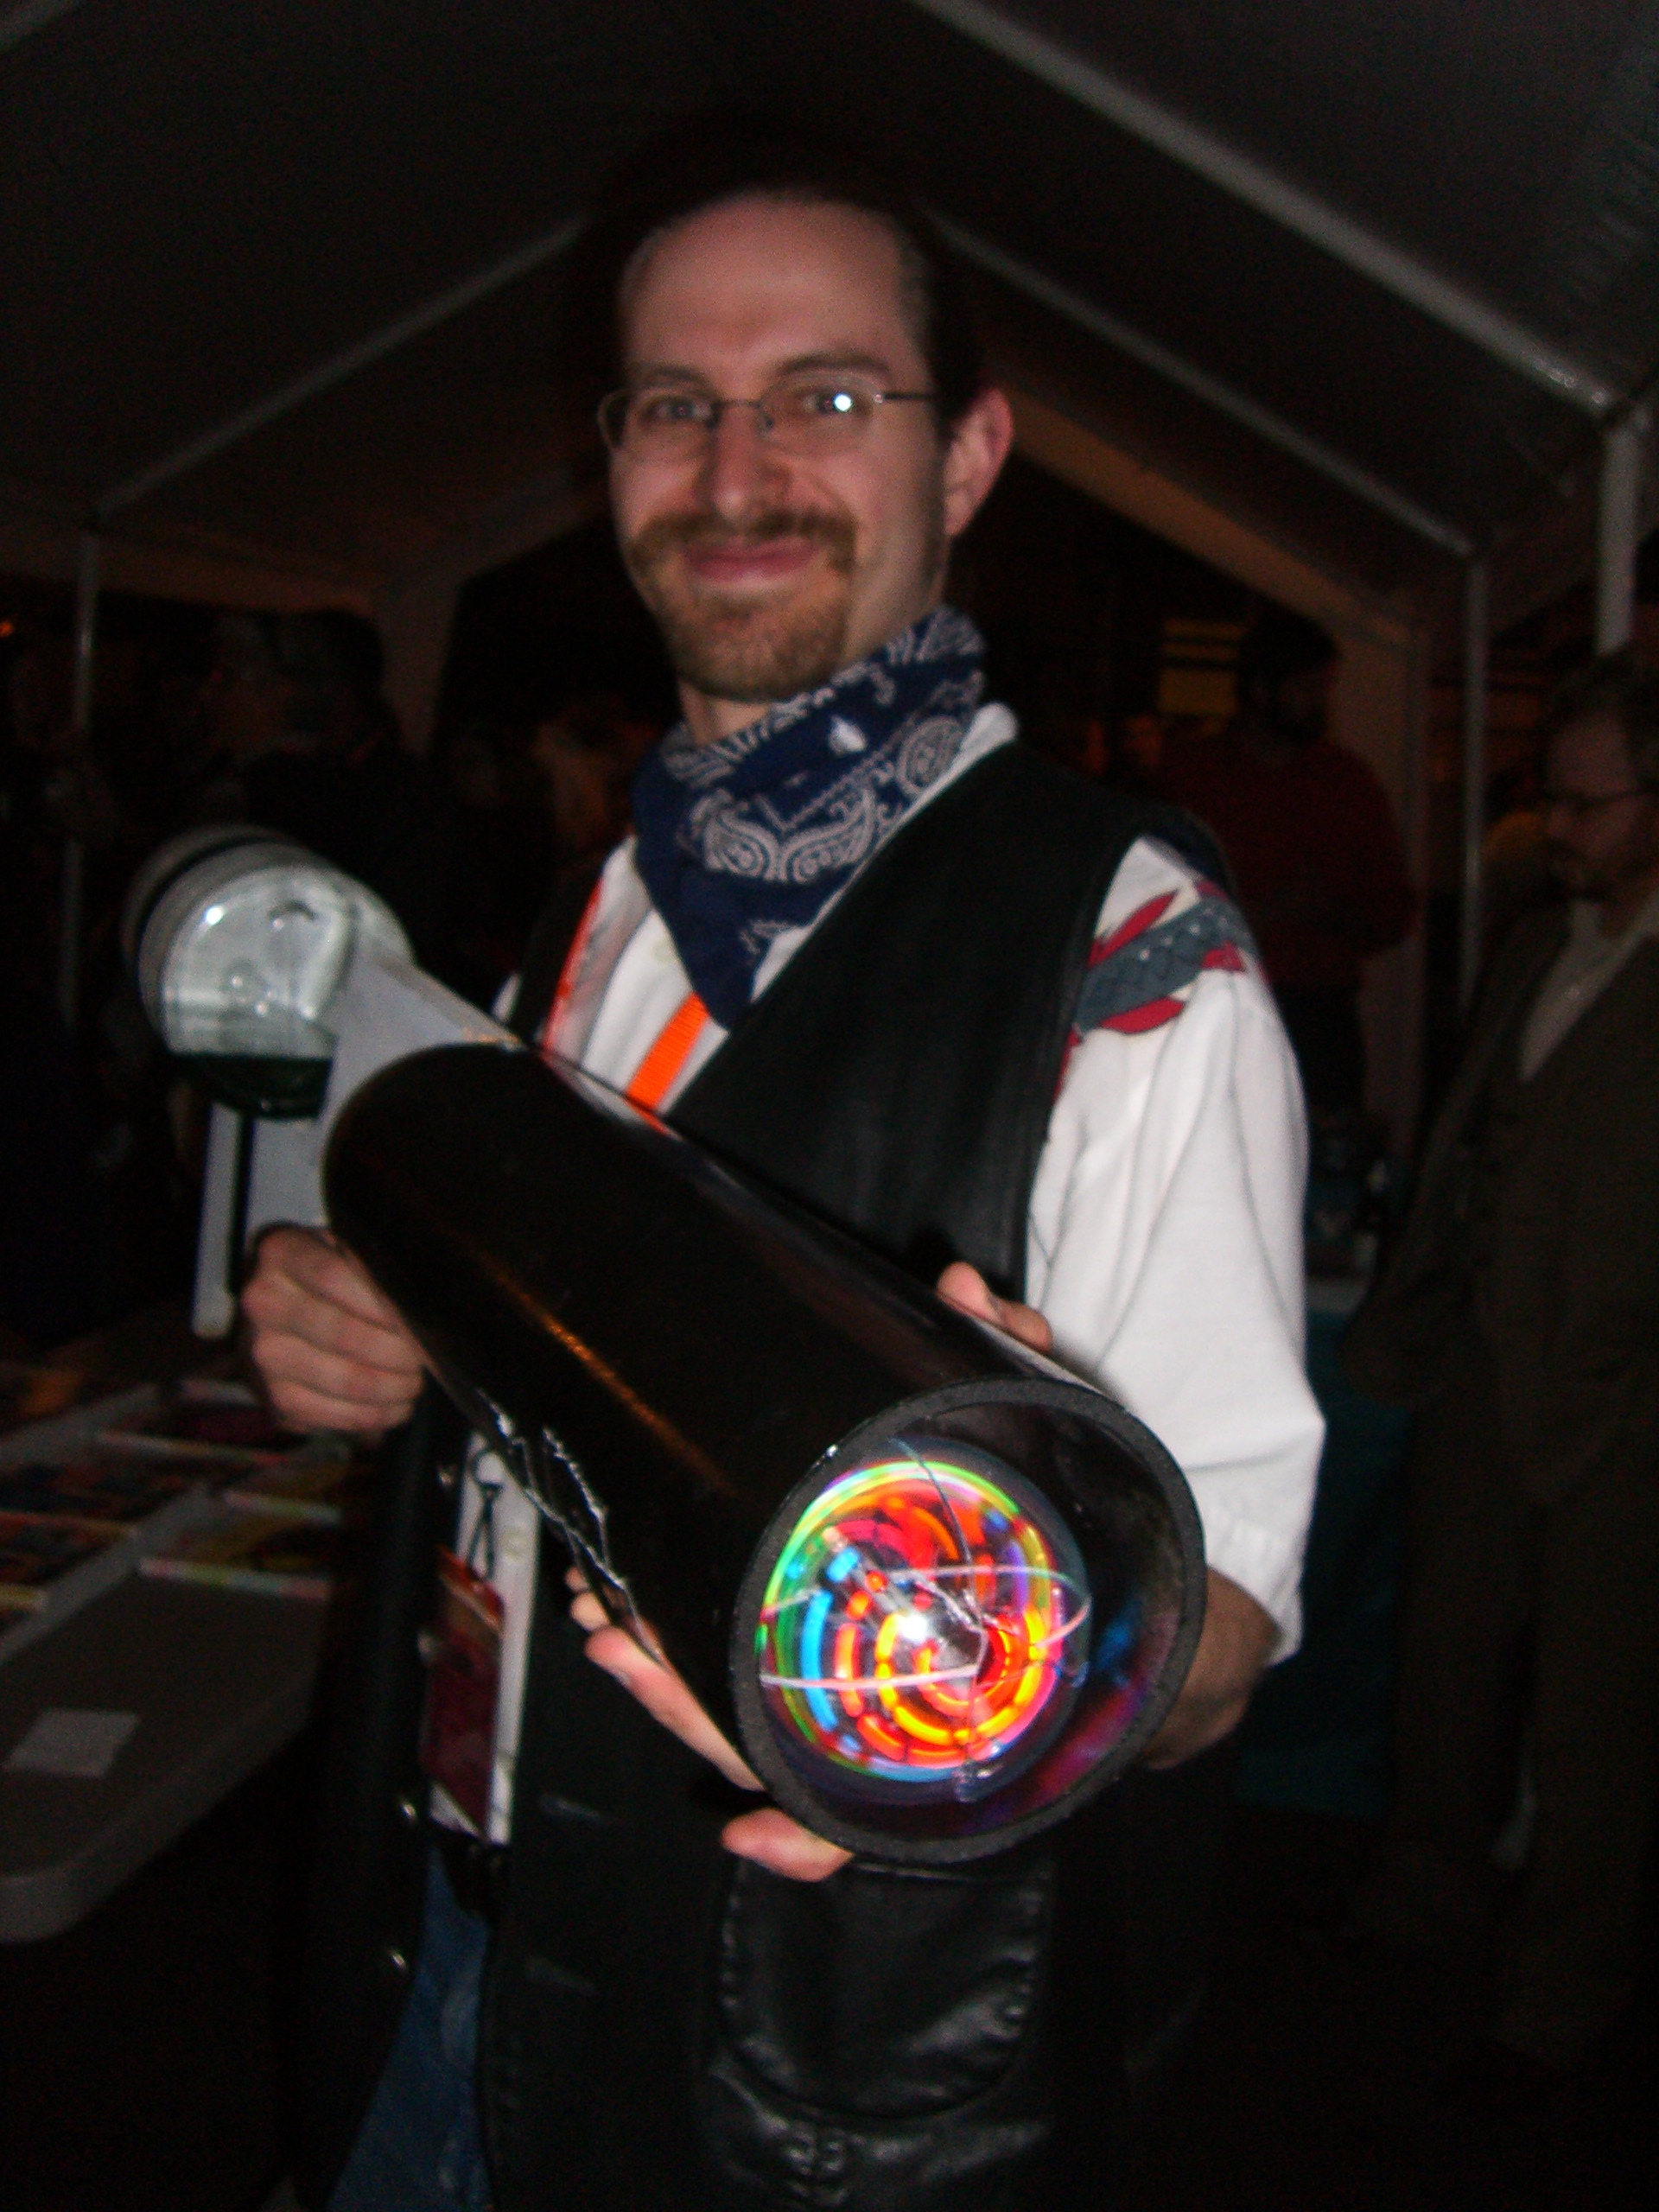 A guy with a kaleidoscope at the Futures Past steampunk party at SXSW 2007